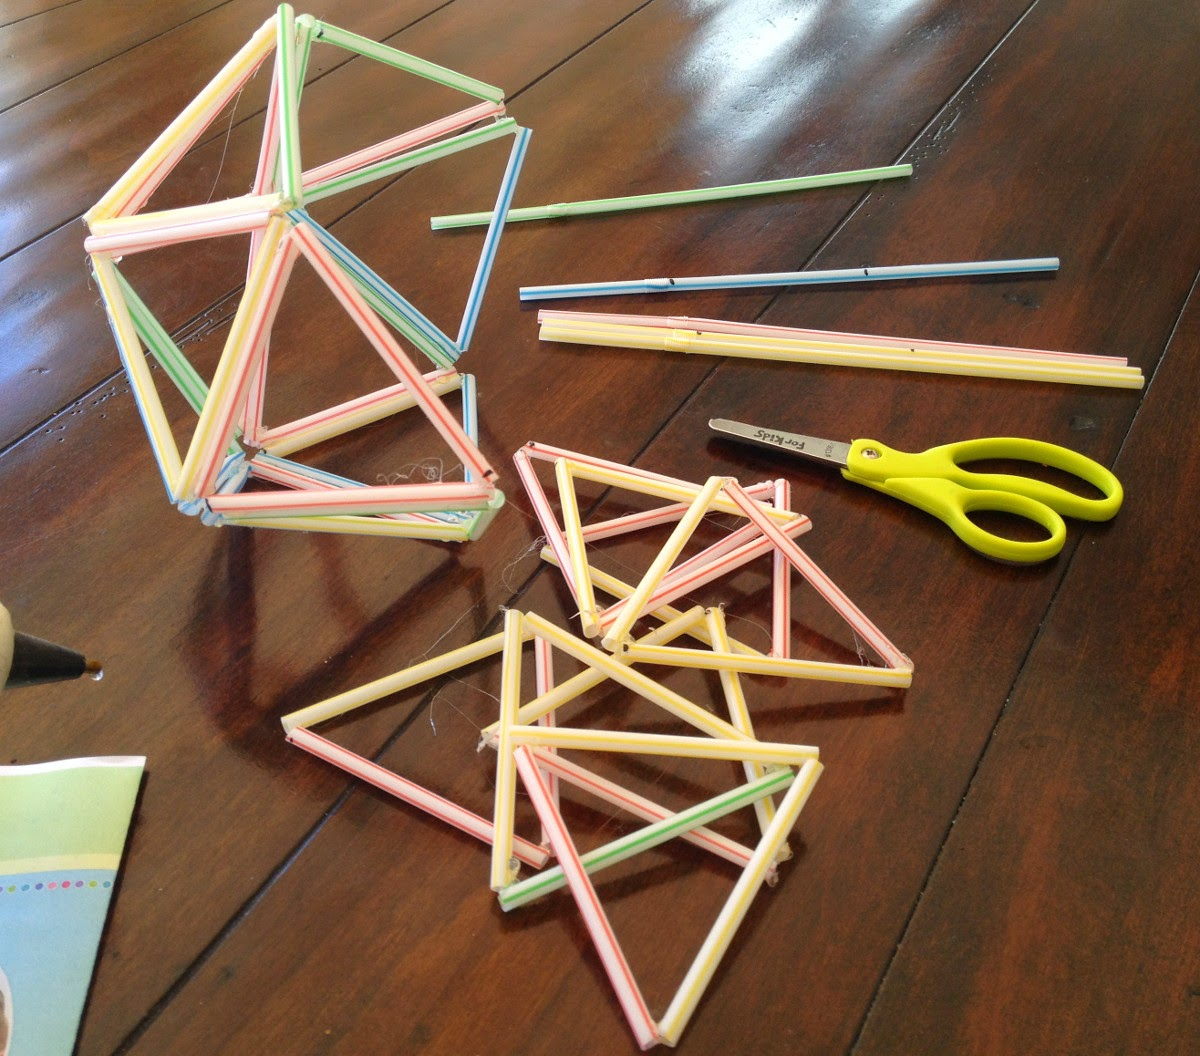 egg drop project with straws Find and save ideas about egg drop with straws on pinterest | see more ideas about egg drop project, egg drop and stem projects for kids.